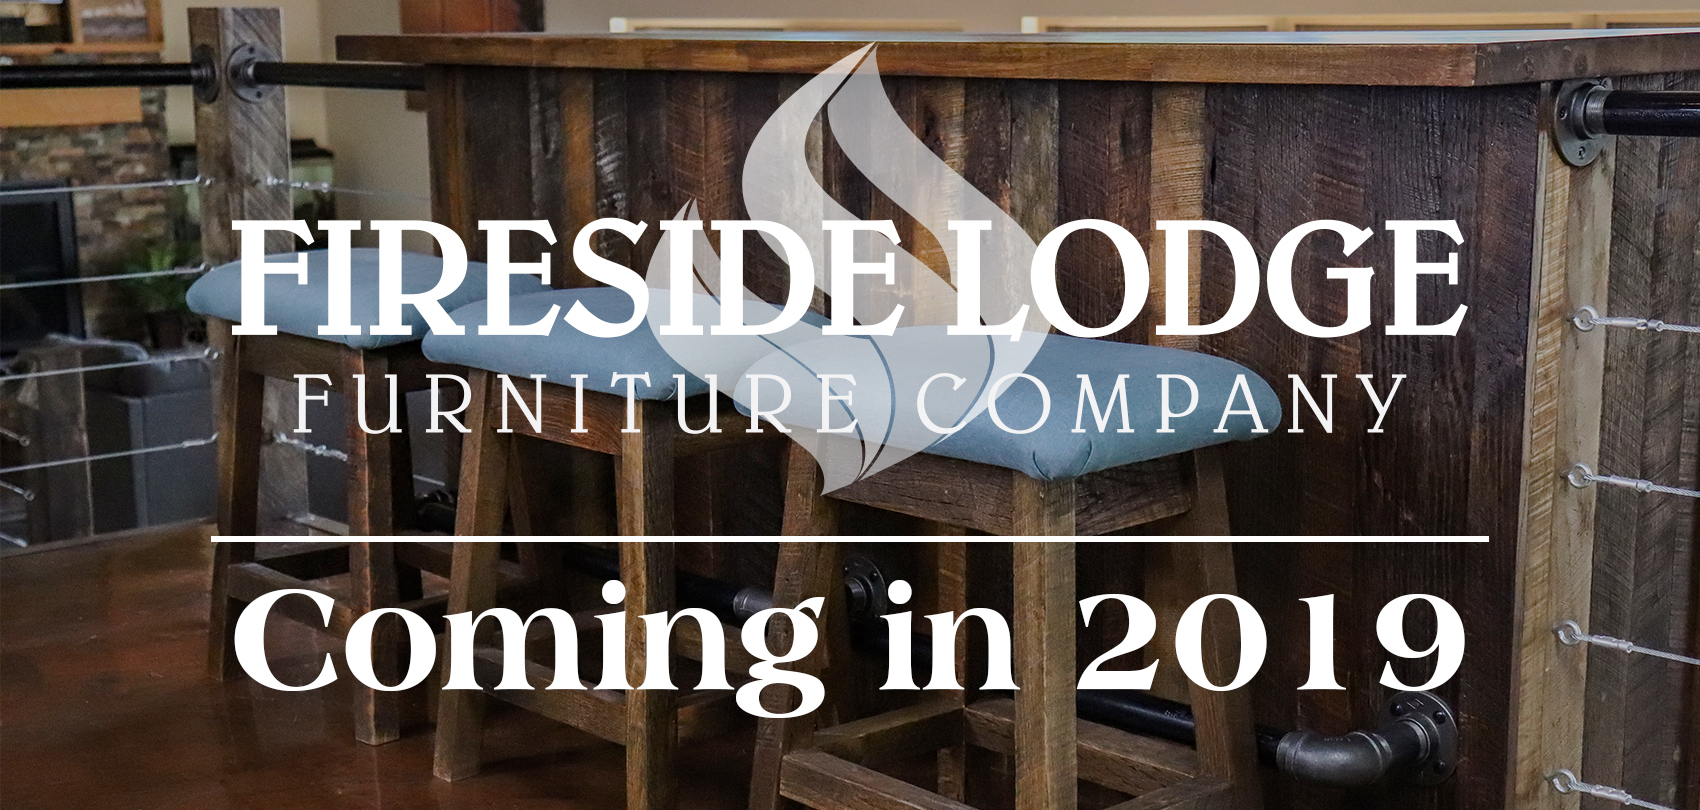 2019 is looking to be a big year for Fireside Lodge customers